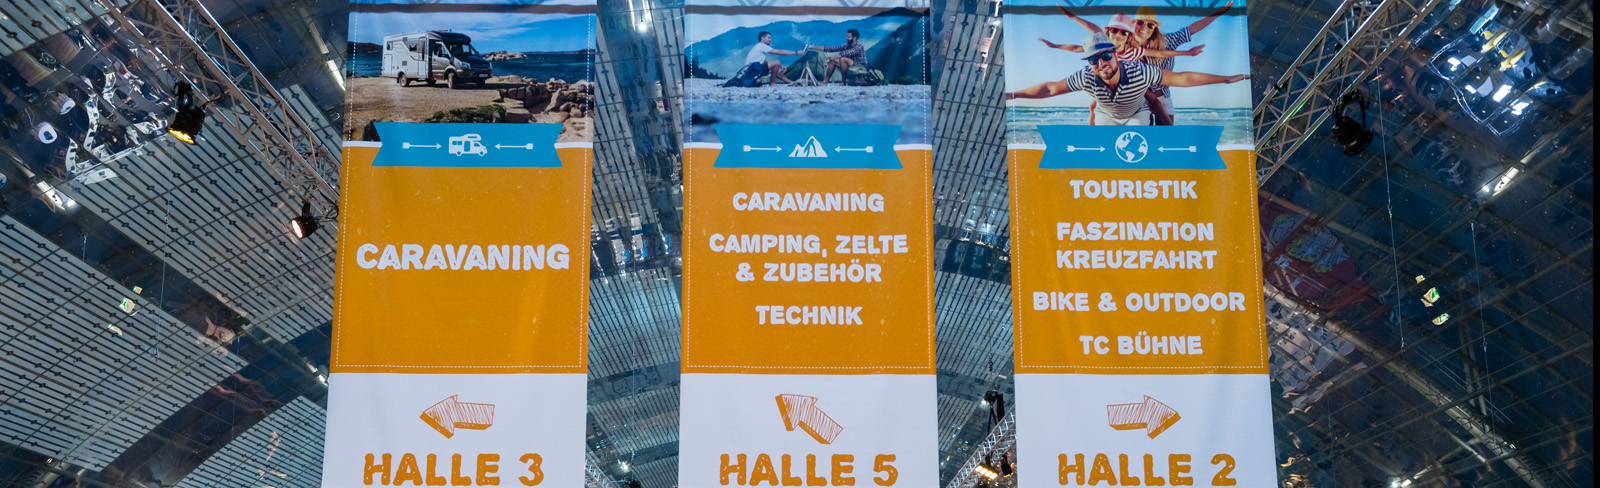 Review of Tourism & Caravaning 2019